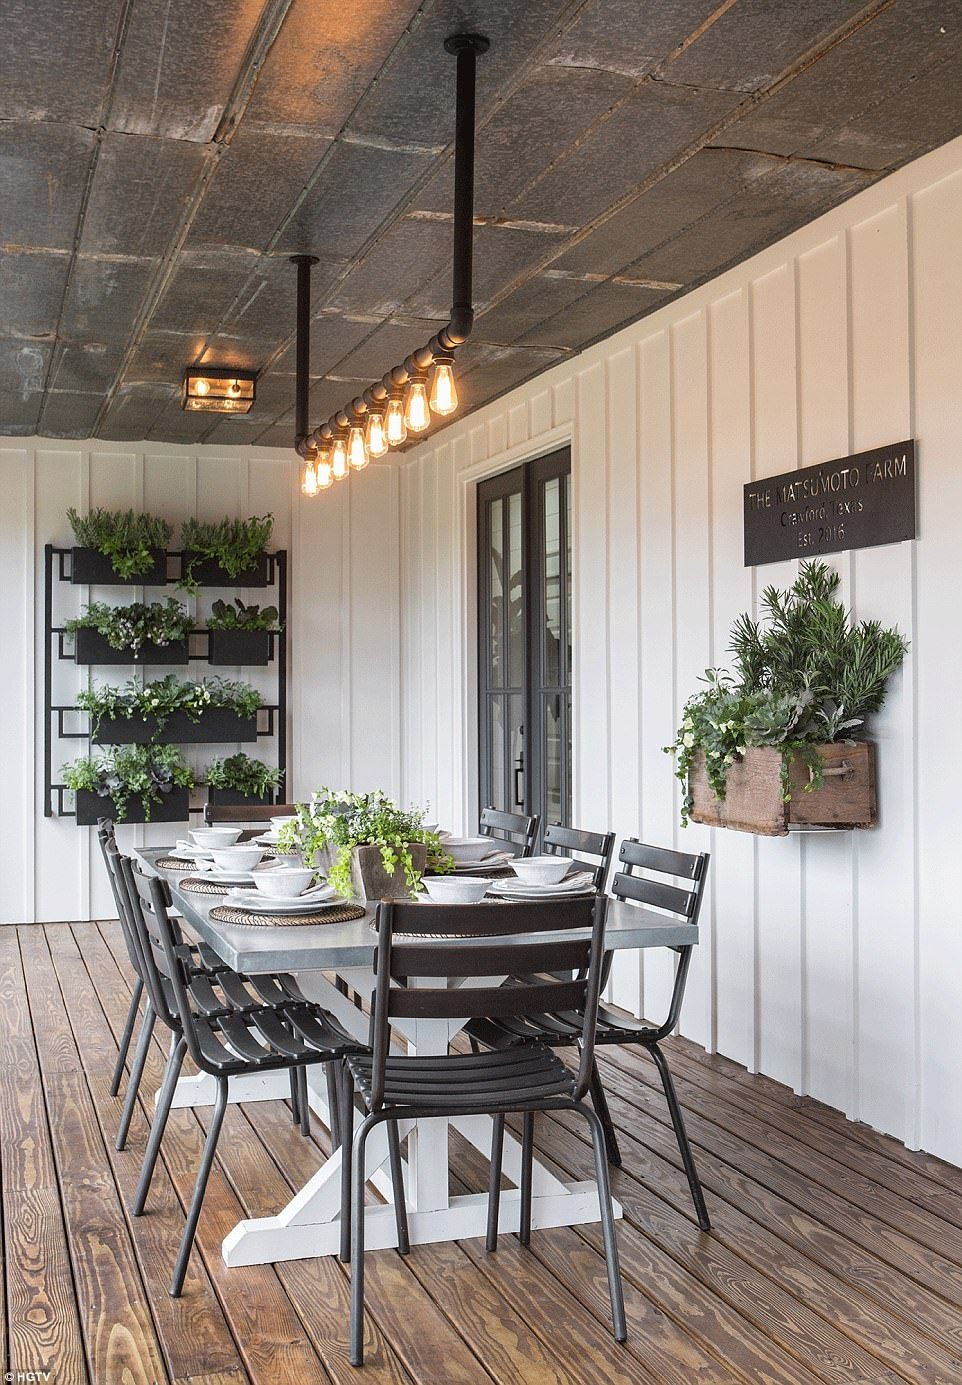 Above exterior window decor  from  shack to palatial family ranch on fixer upper  home